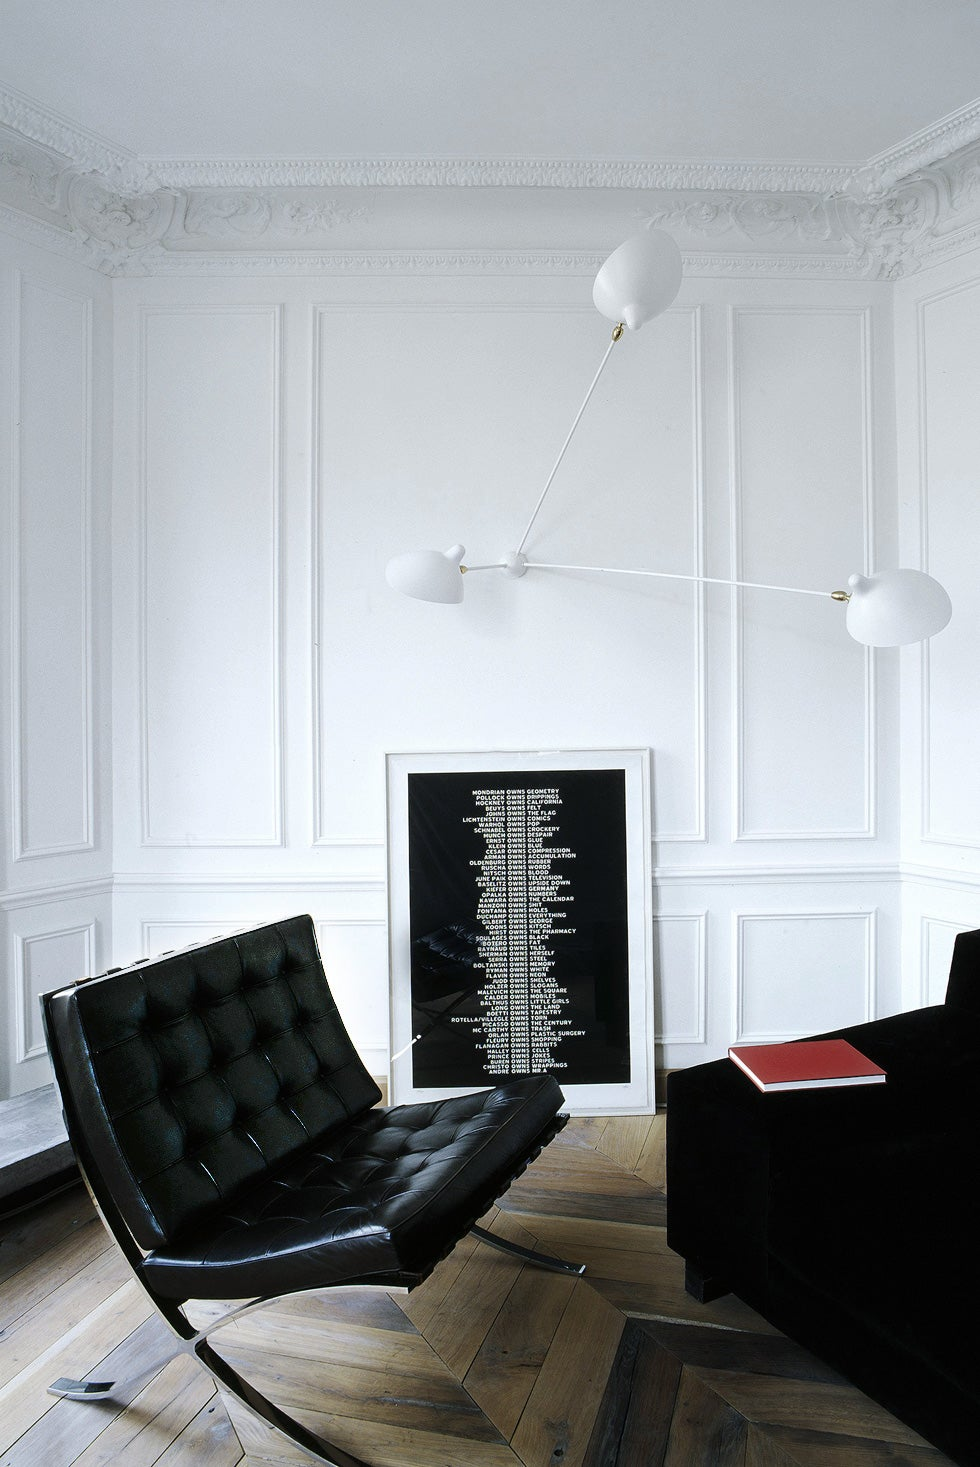 Fireplace In French Joseph Dirand: Le Minimalist Of Interior Design & Architecture